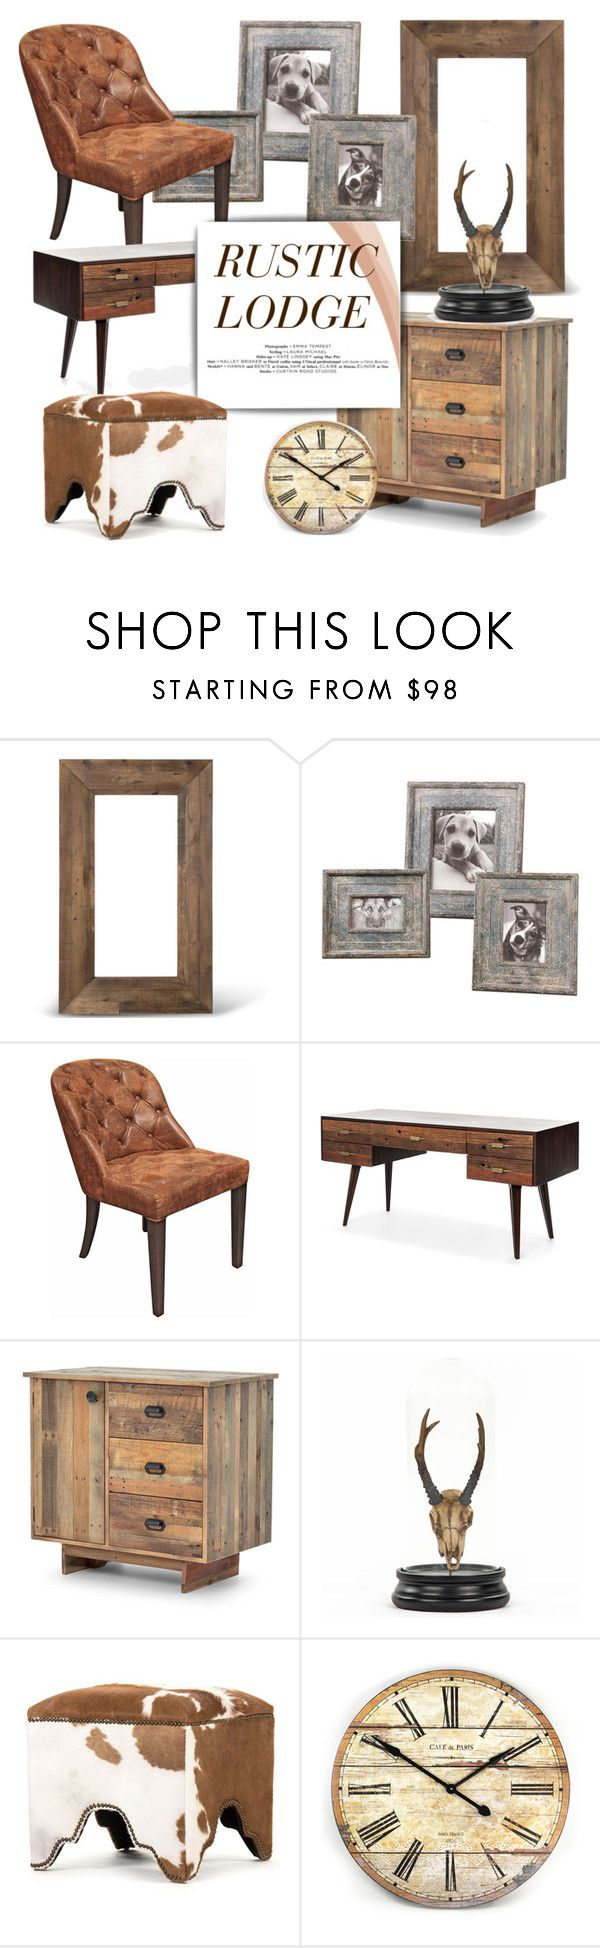 """Rustic Lodge Decor"" by kathykuohome ❤ liked on Polyvore featuring interior, interiors, interior design, home, home decor, interior decorating, Tiffany & Co., rustic, Home and homedecor"